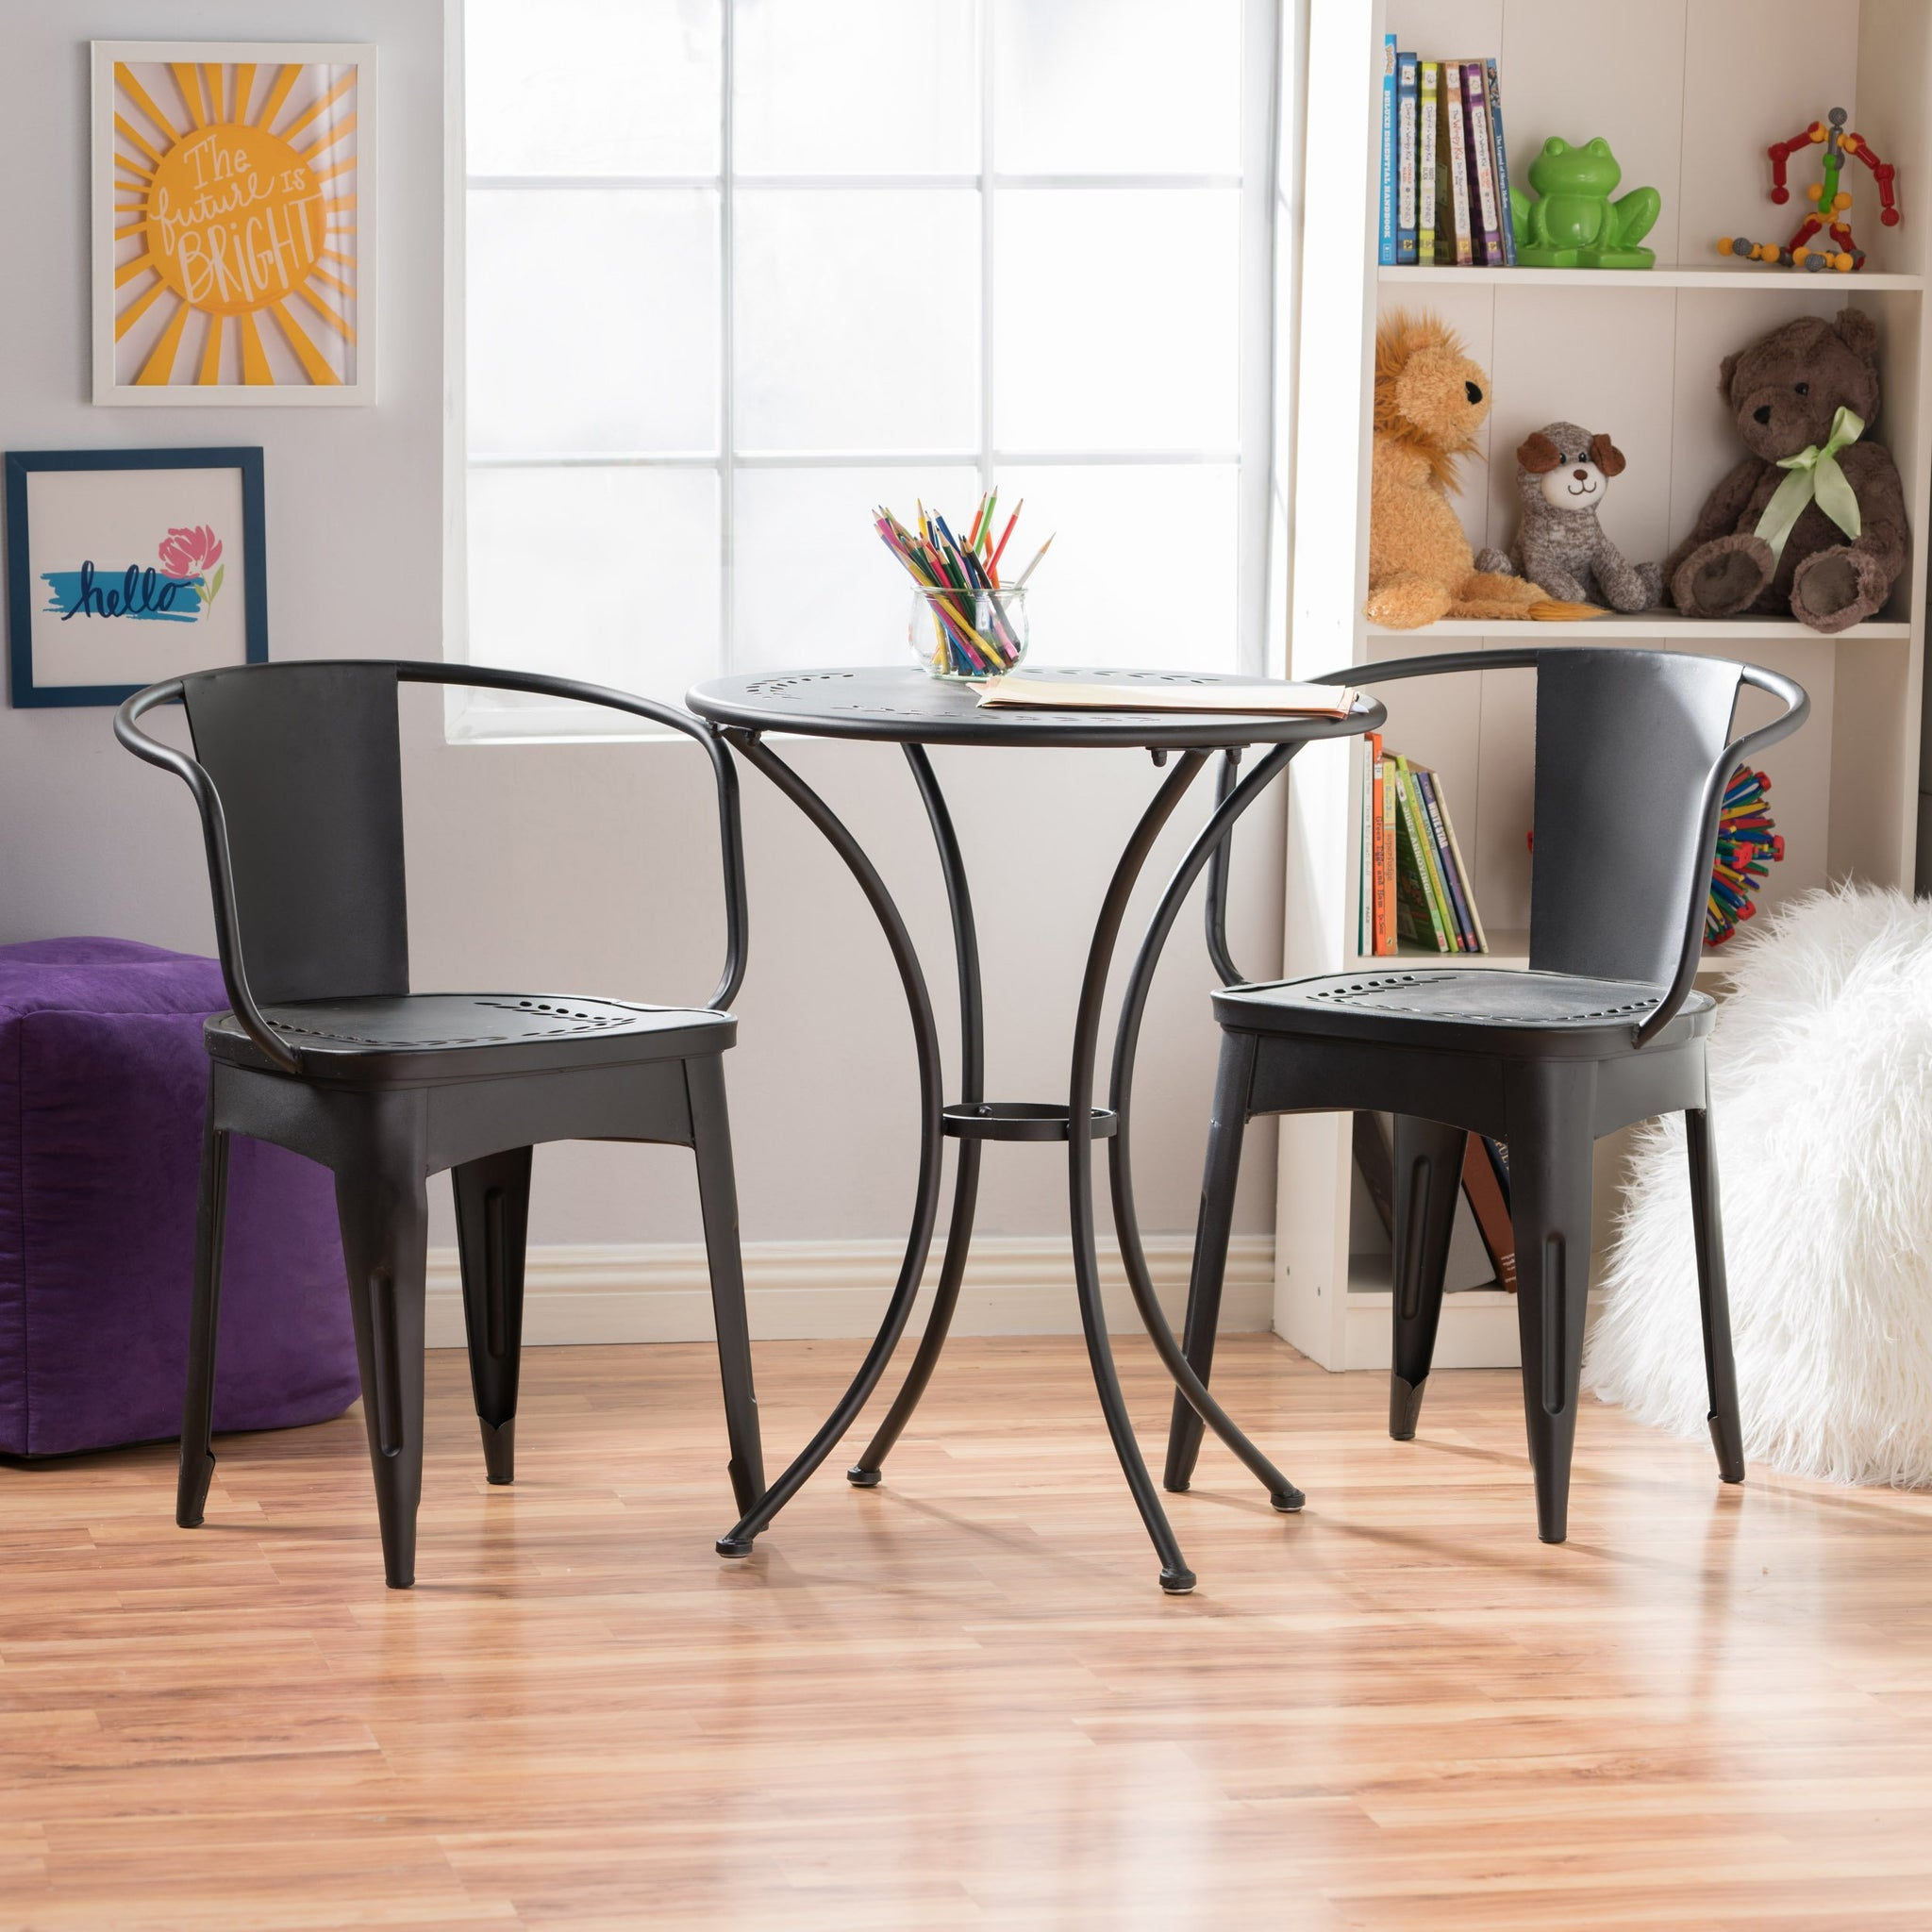 Augusta Childrens Table Chat Set